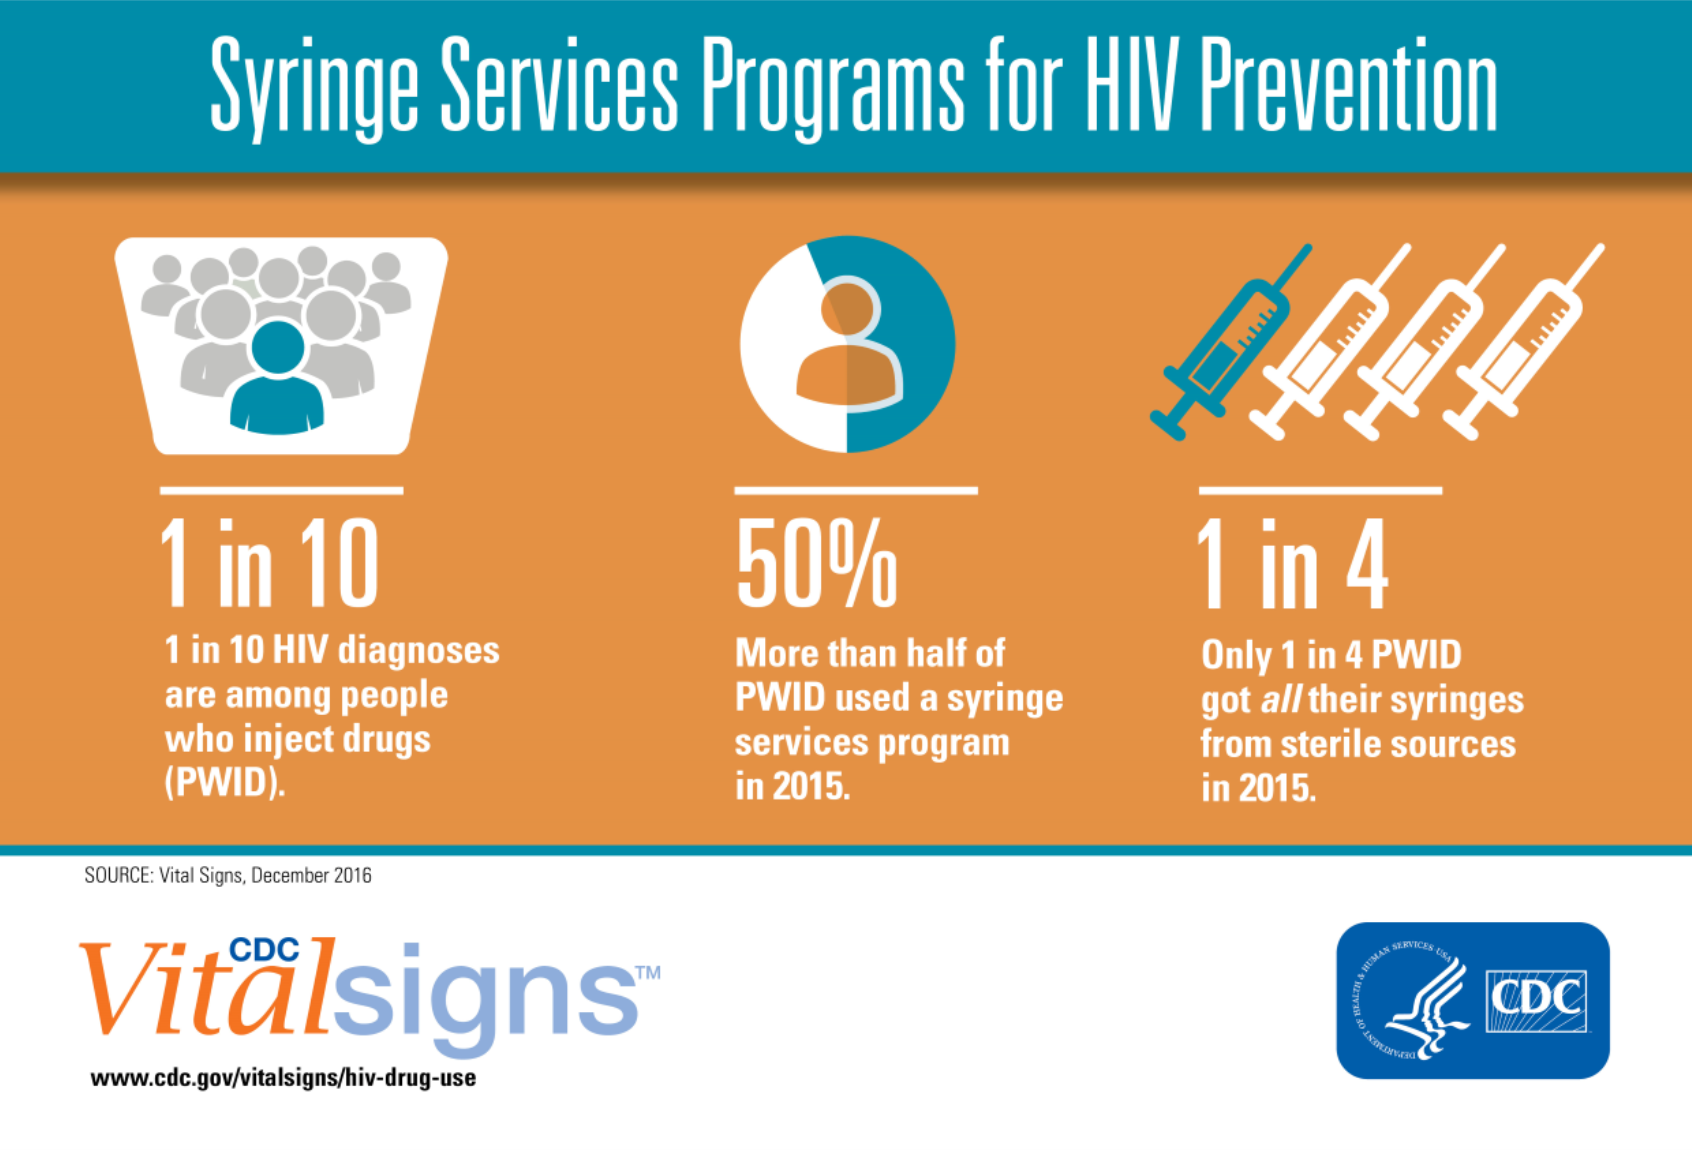 Syringe Services Programs for HIV Prevention infographic